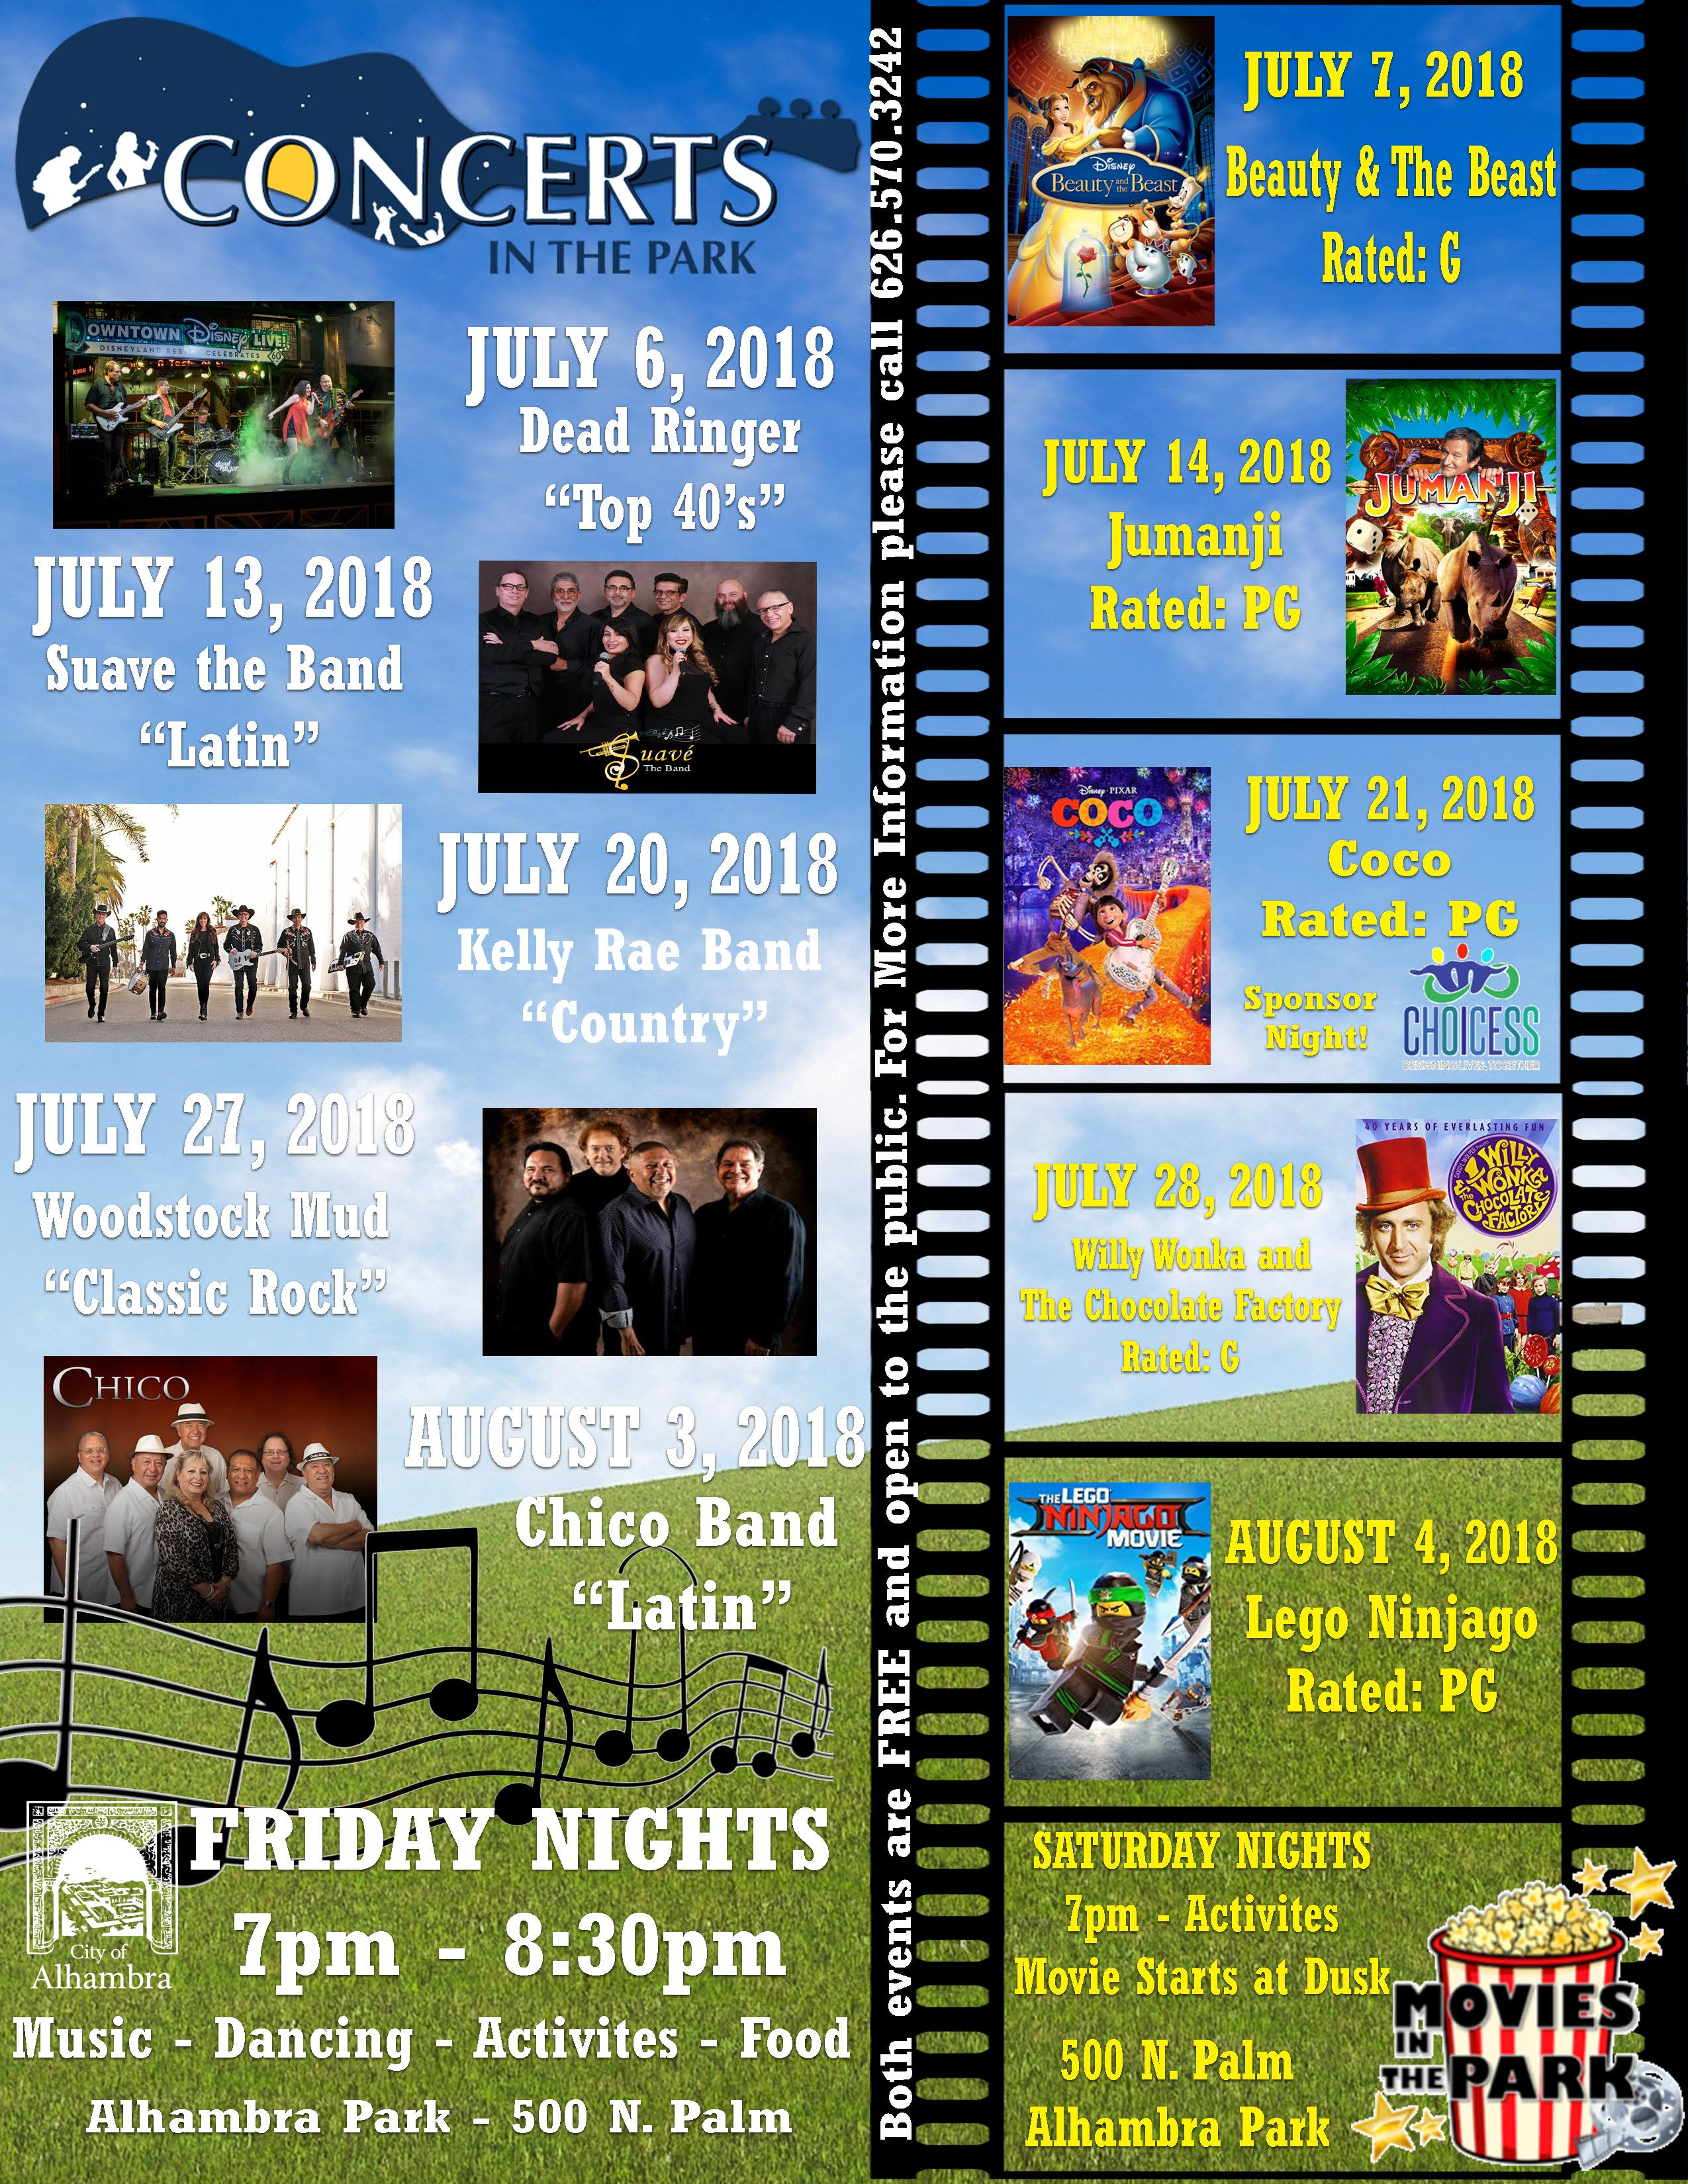 Photo of Concerts and Movies in the Park flyer with dates and times of movies and performances